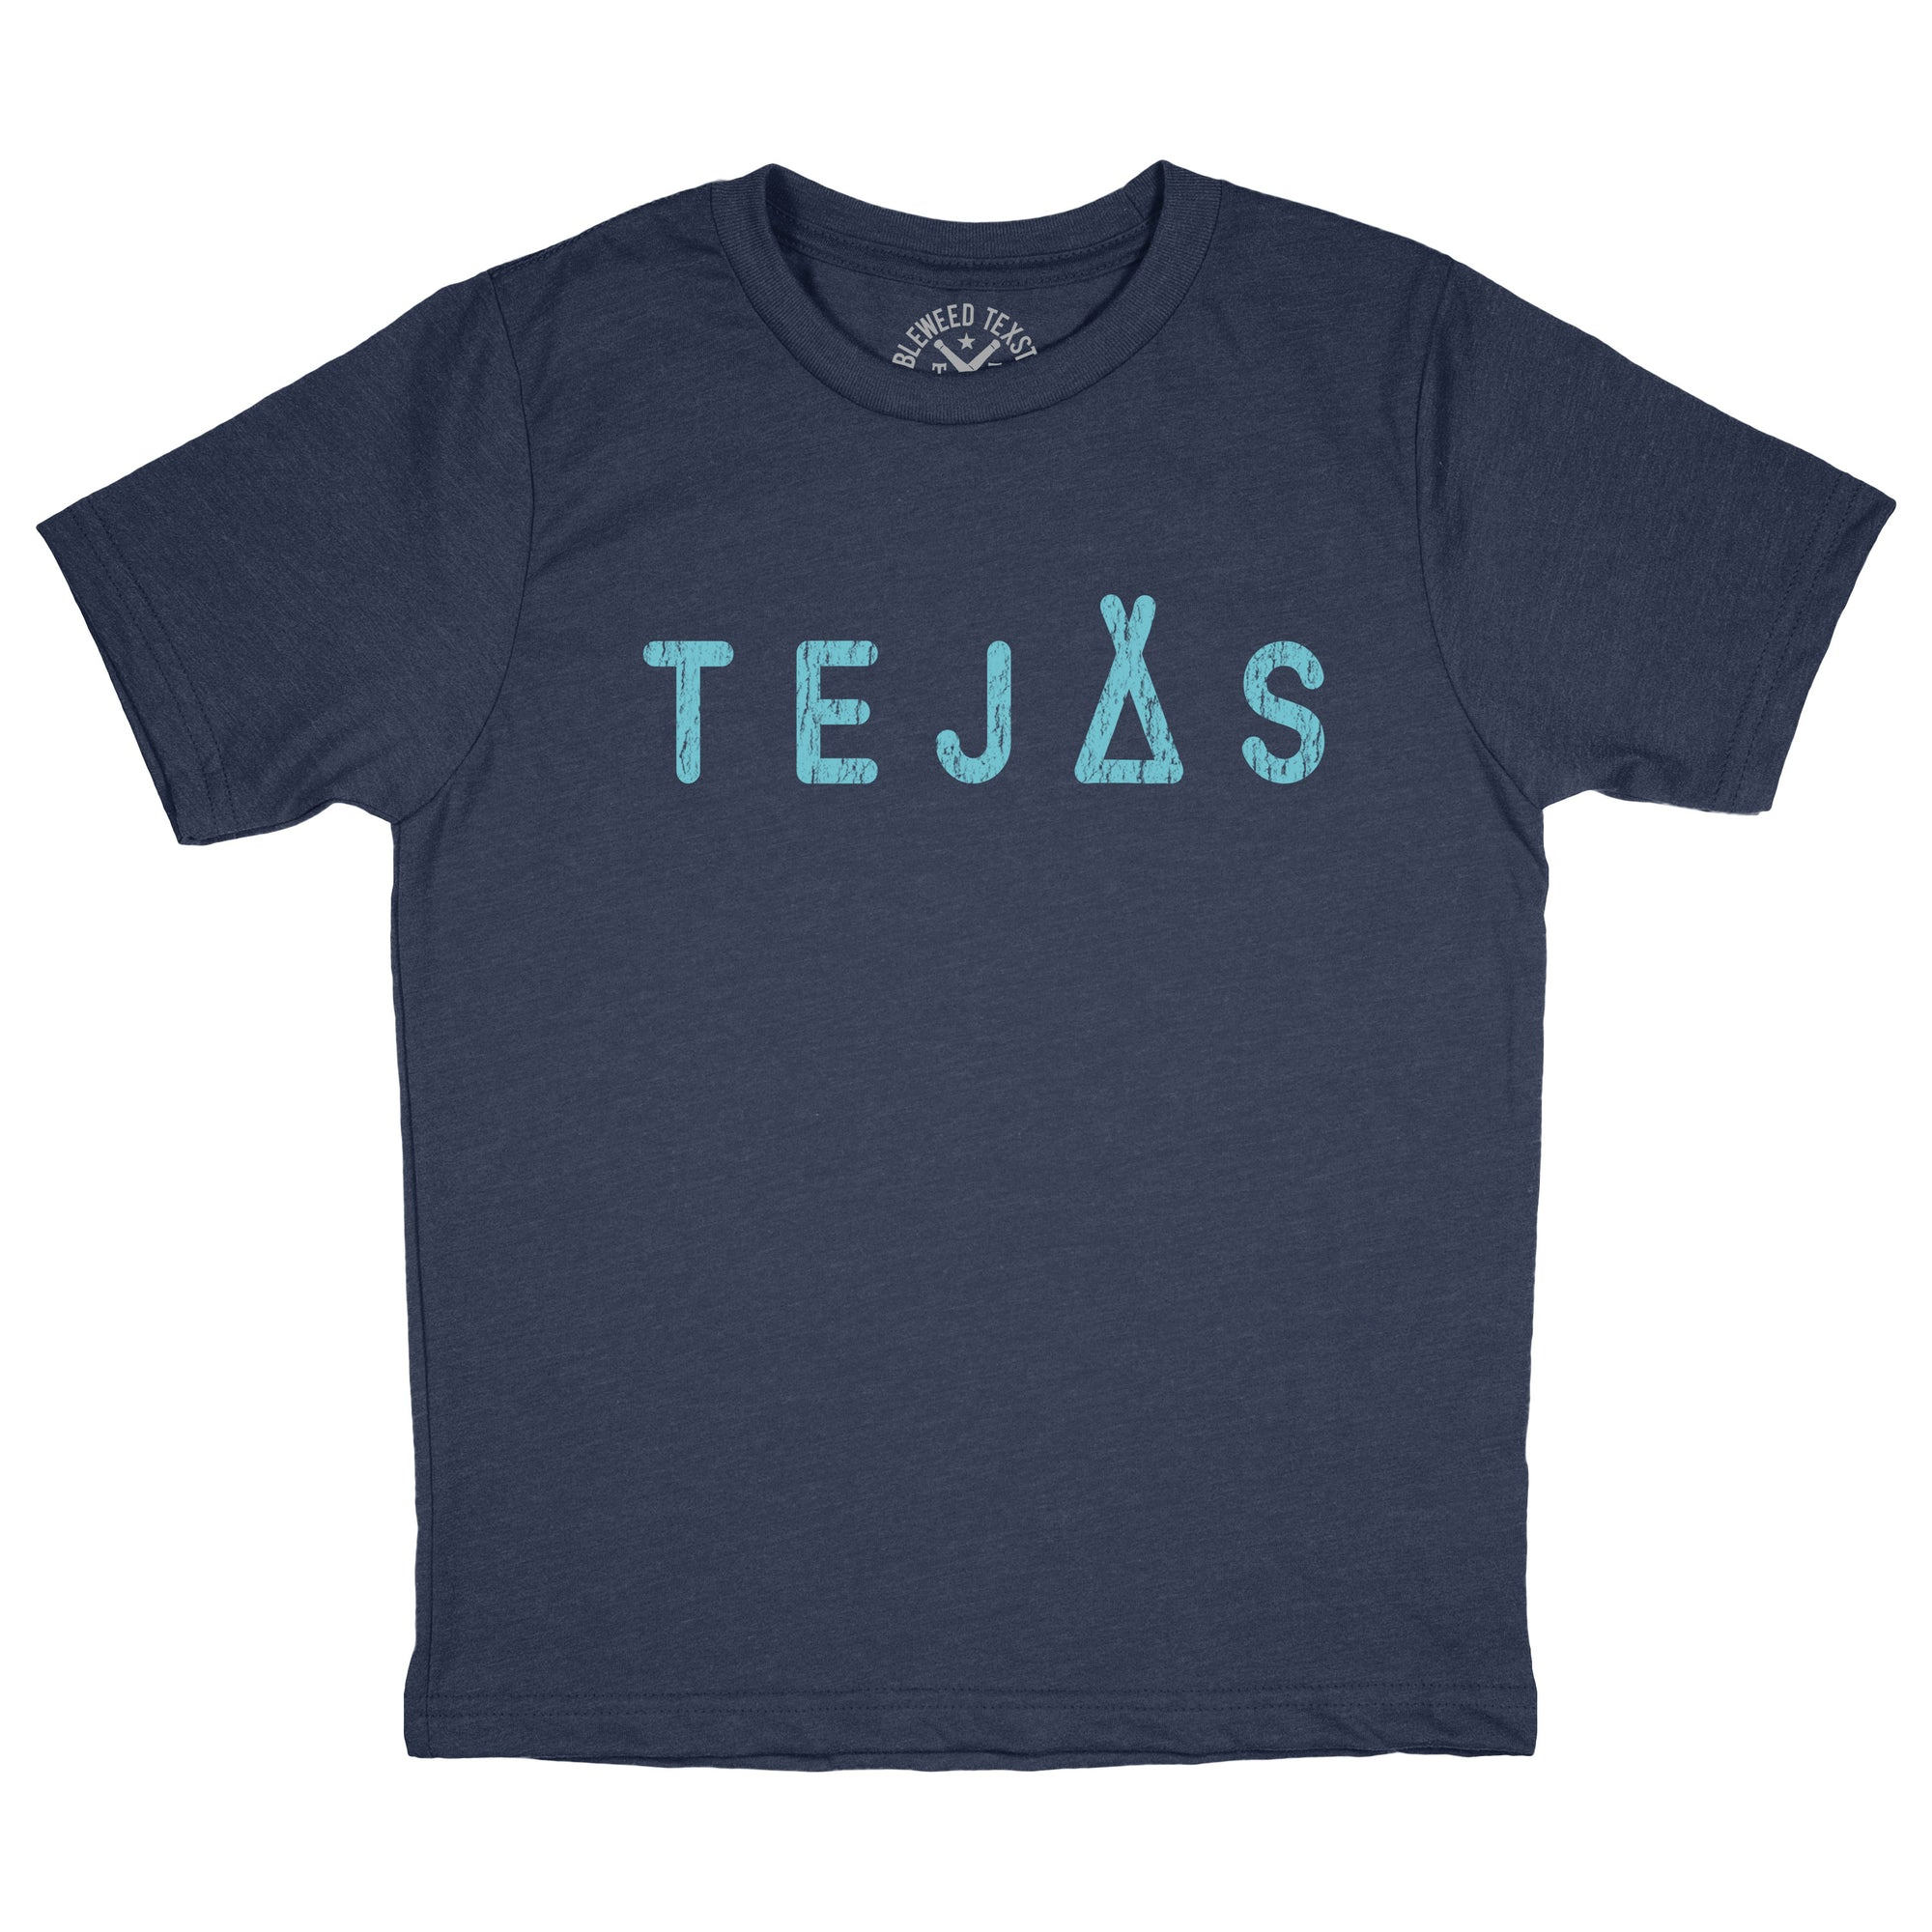 Tejas Teepee T-Shirt (Youth)